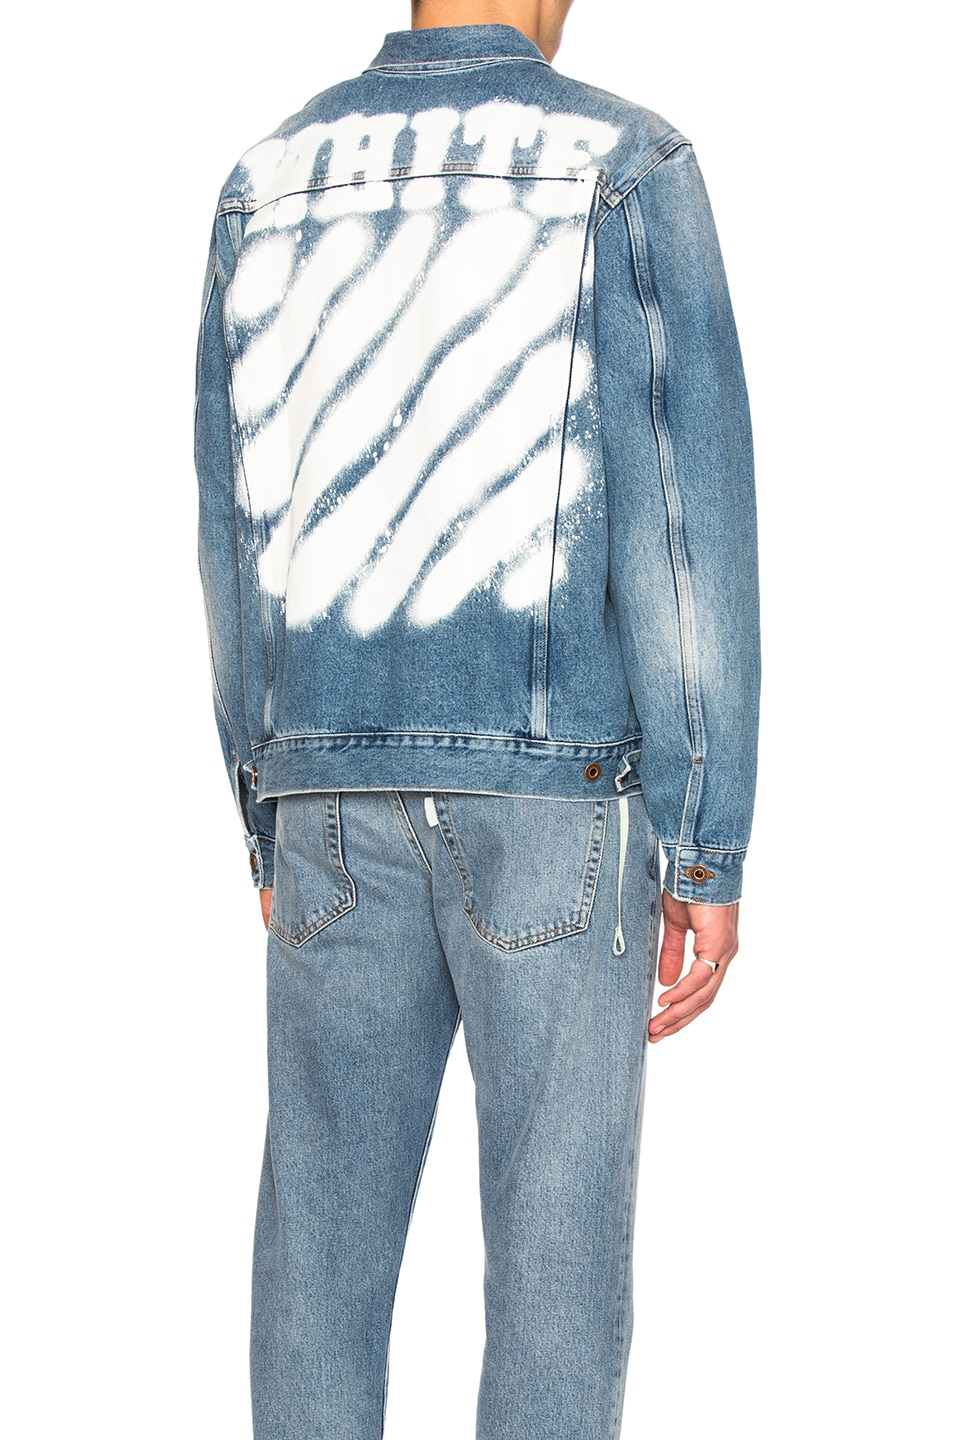 Off White Diagonal Spray Denim Jacket In Vintage Wash